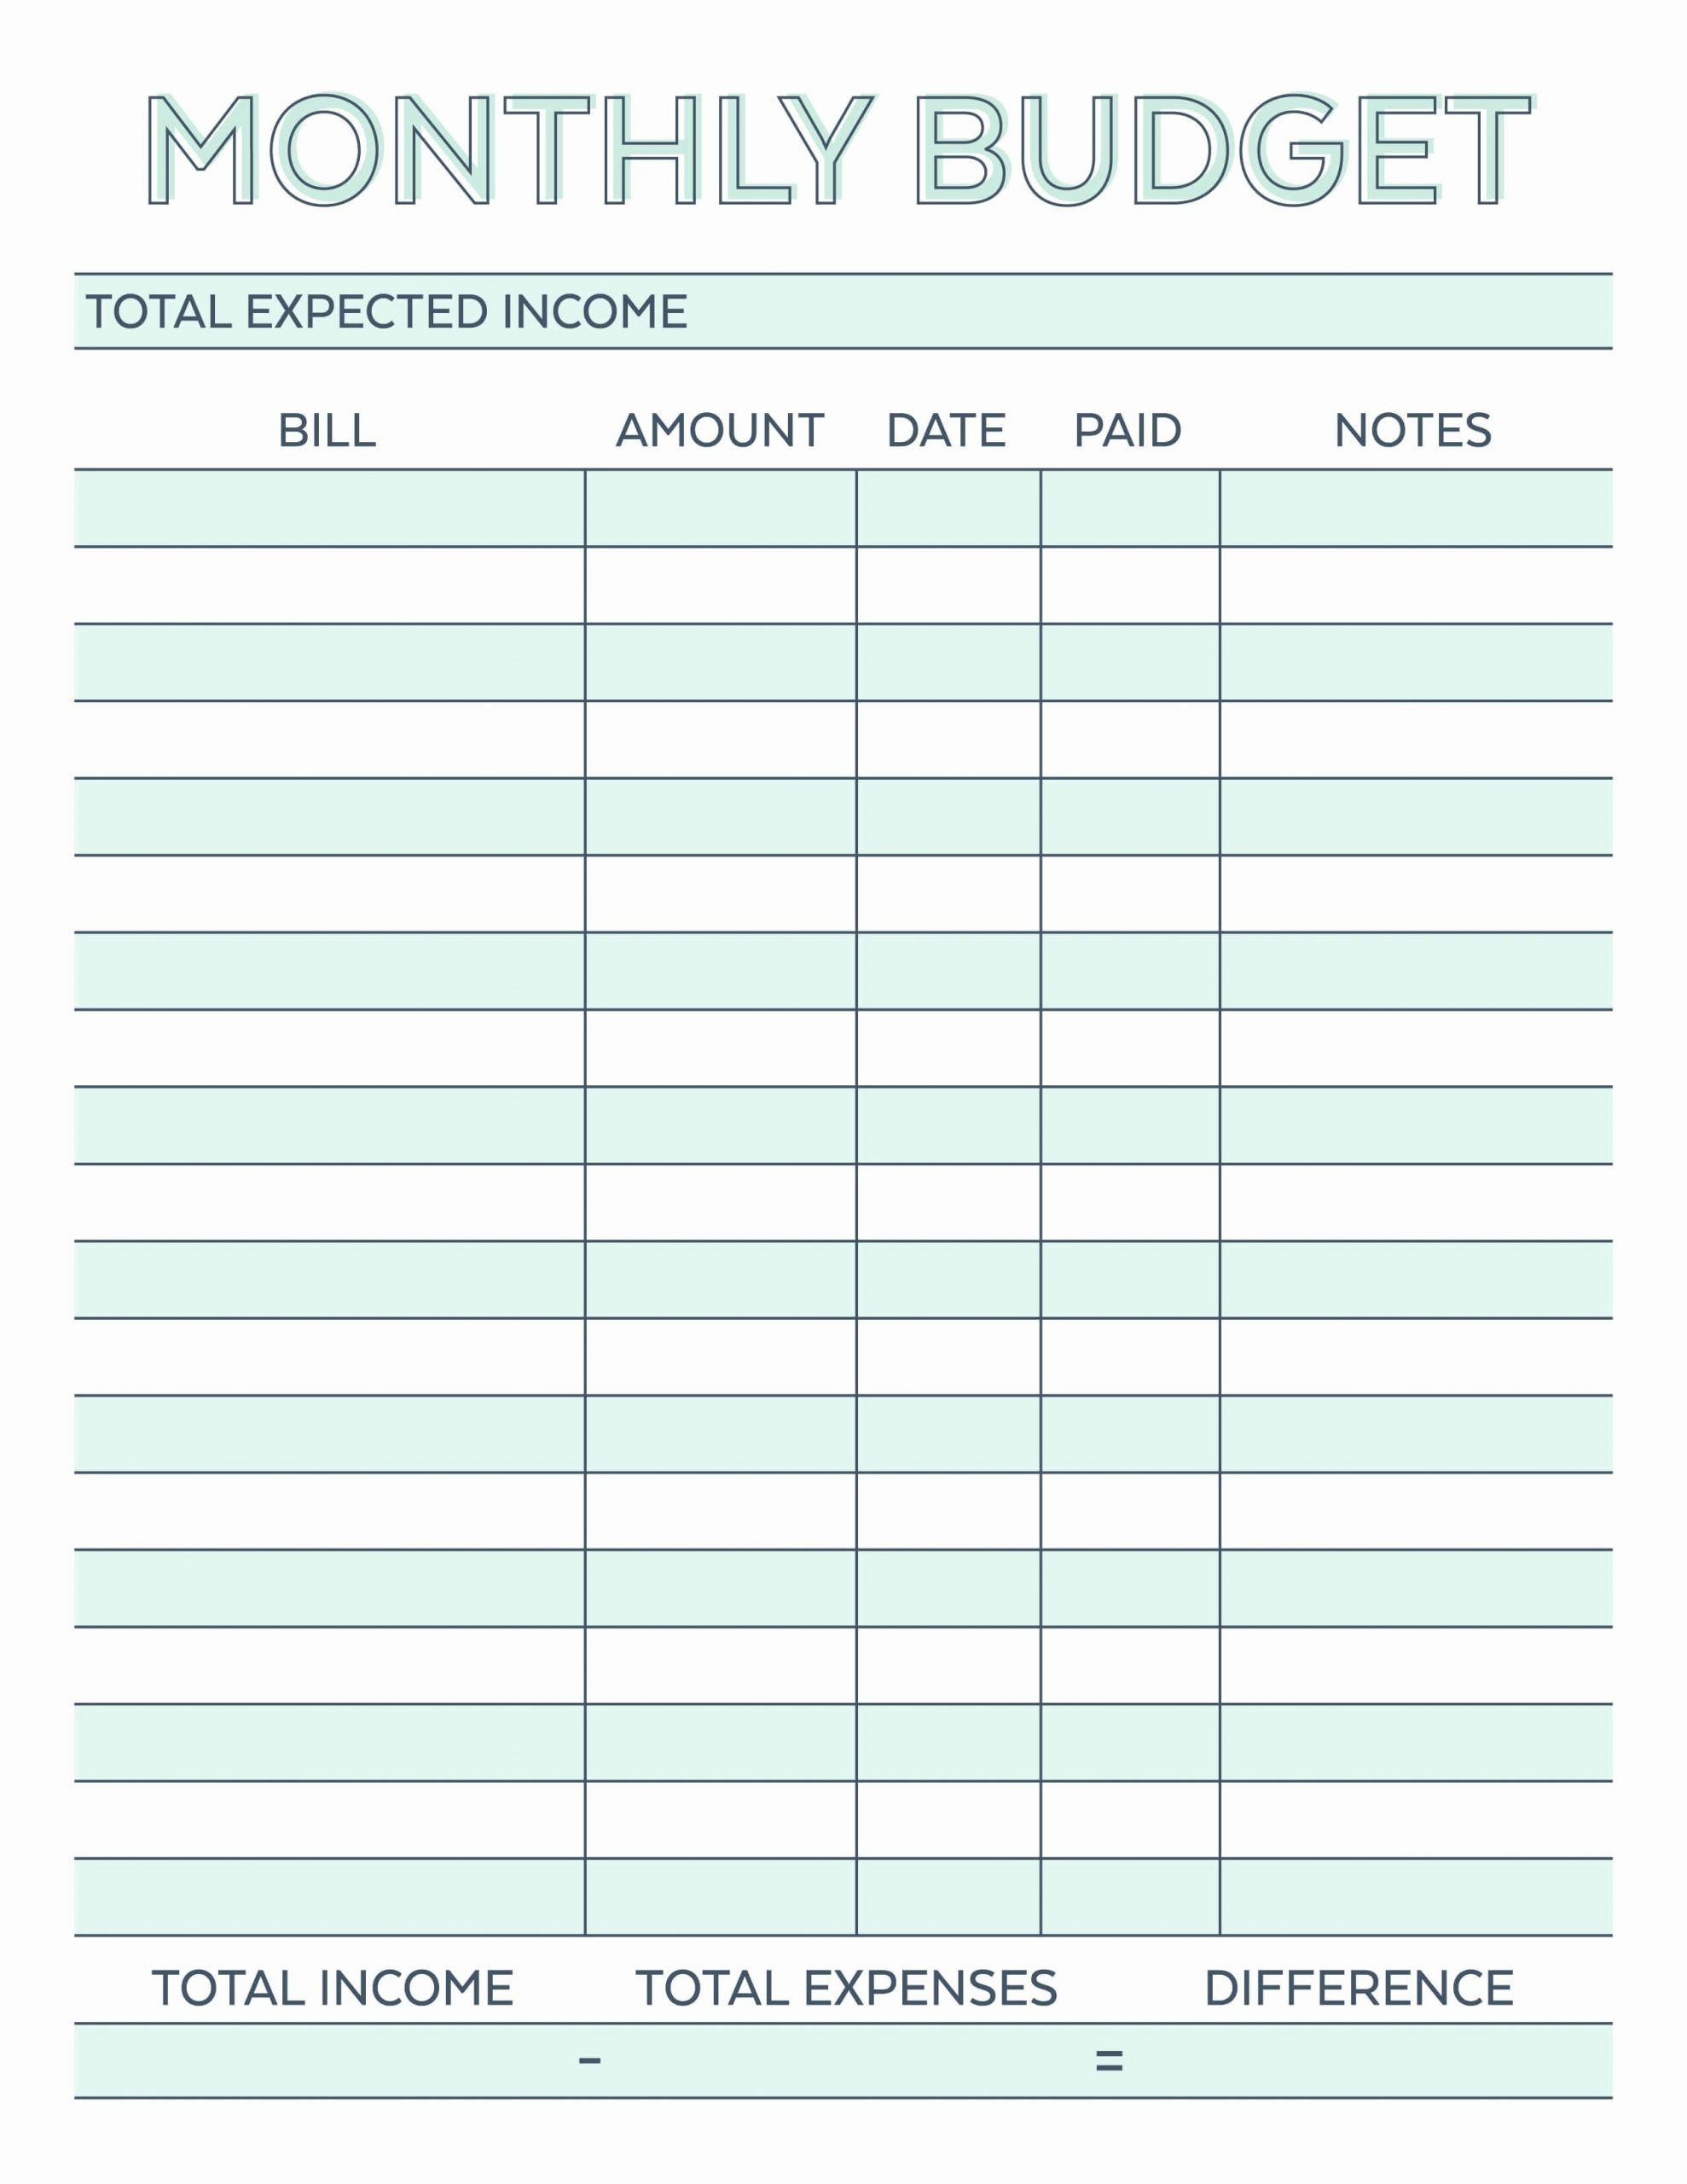 Monthly Budget Worksheet Pdf Inspirational Monthly Bud  Bill Paying Worksheet Pdf